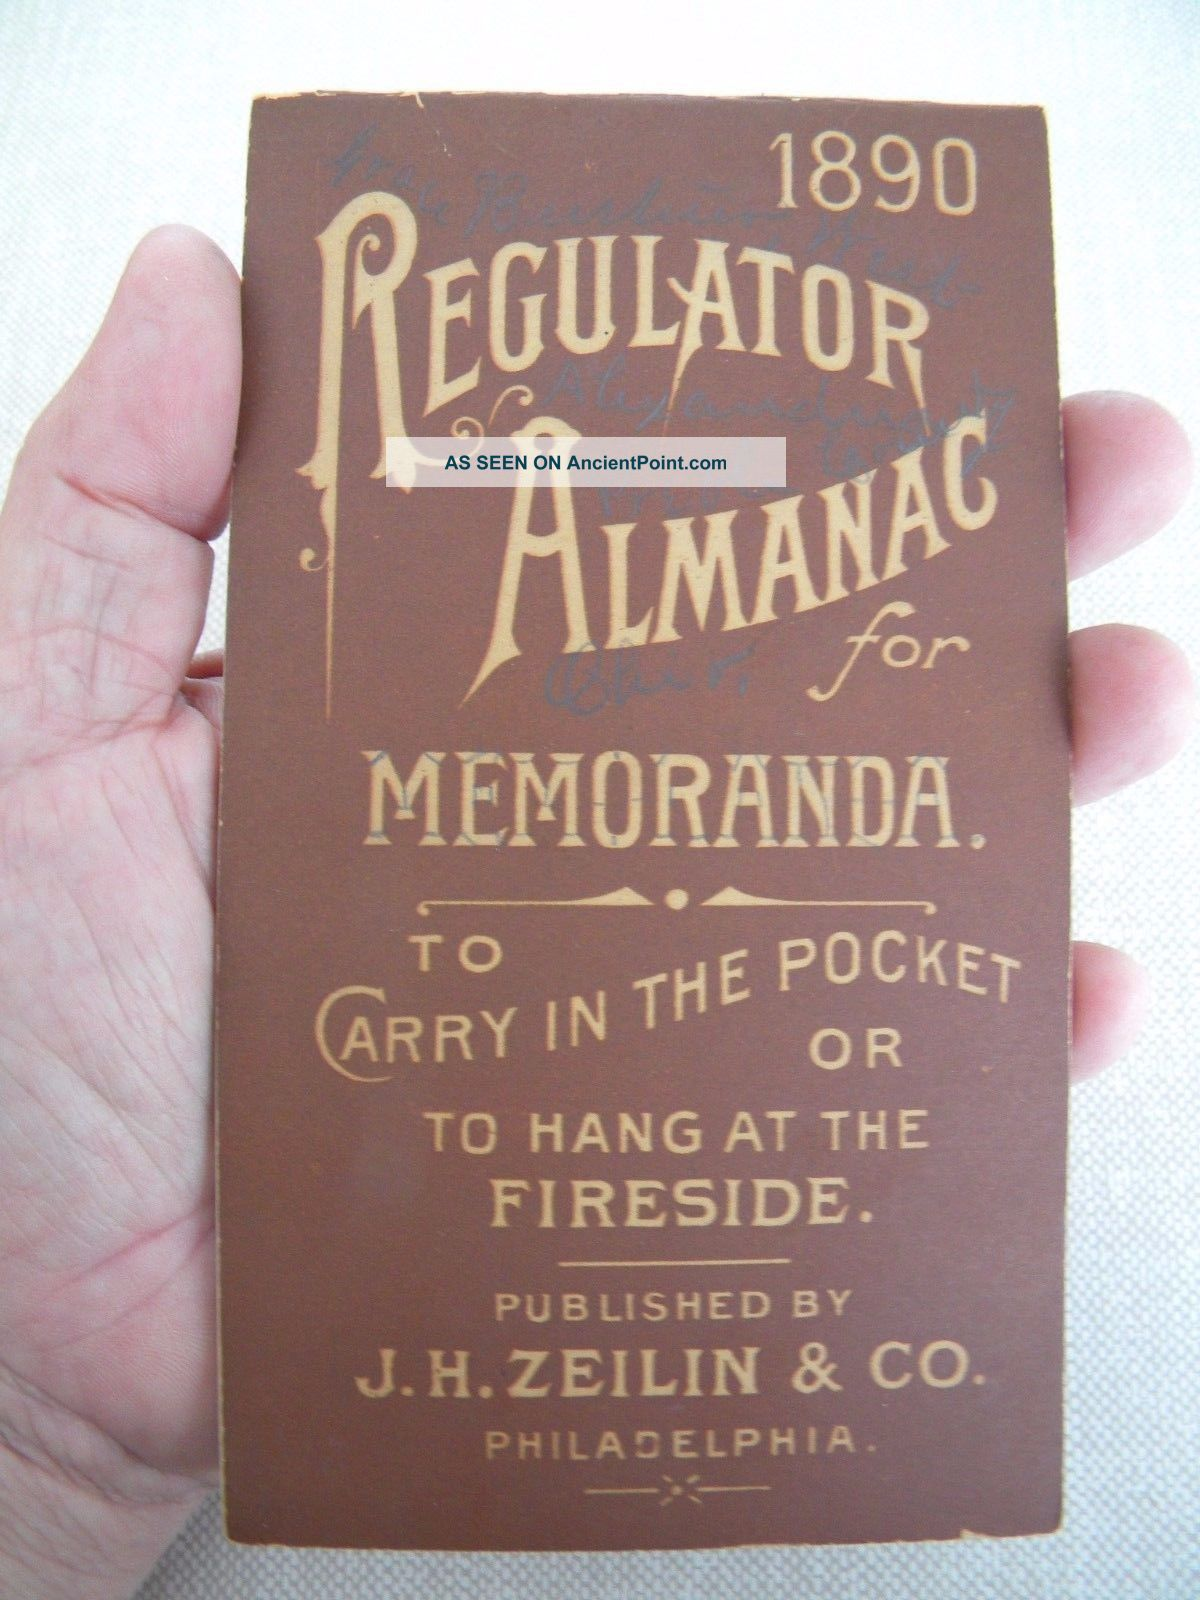 Rare Simmons Regulator Patent Medicine Pocket Almanac West Alexandria Ohio 142 Quack Medicine photo